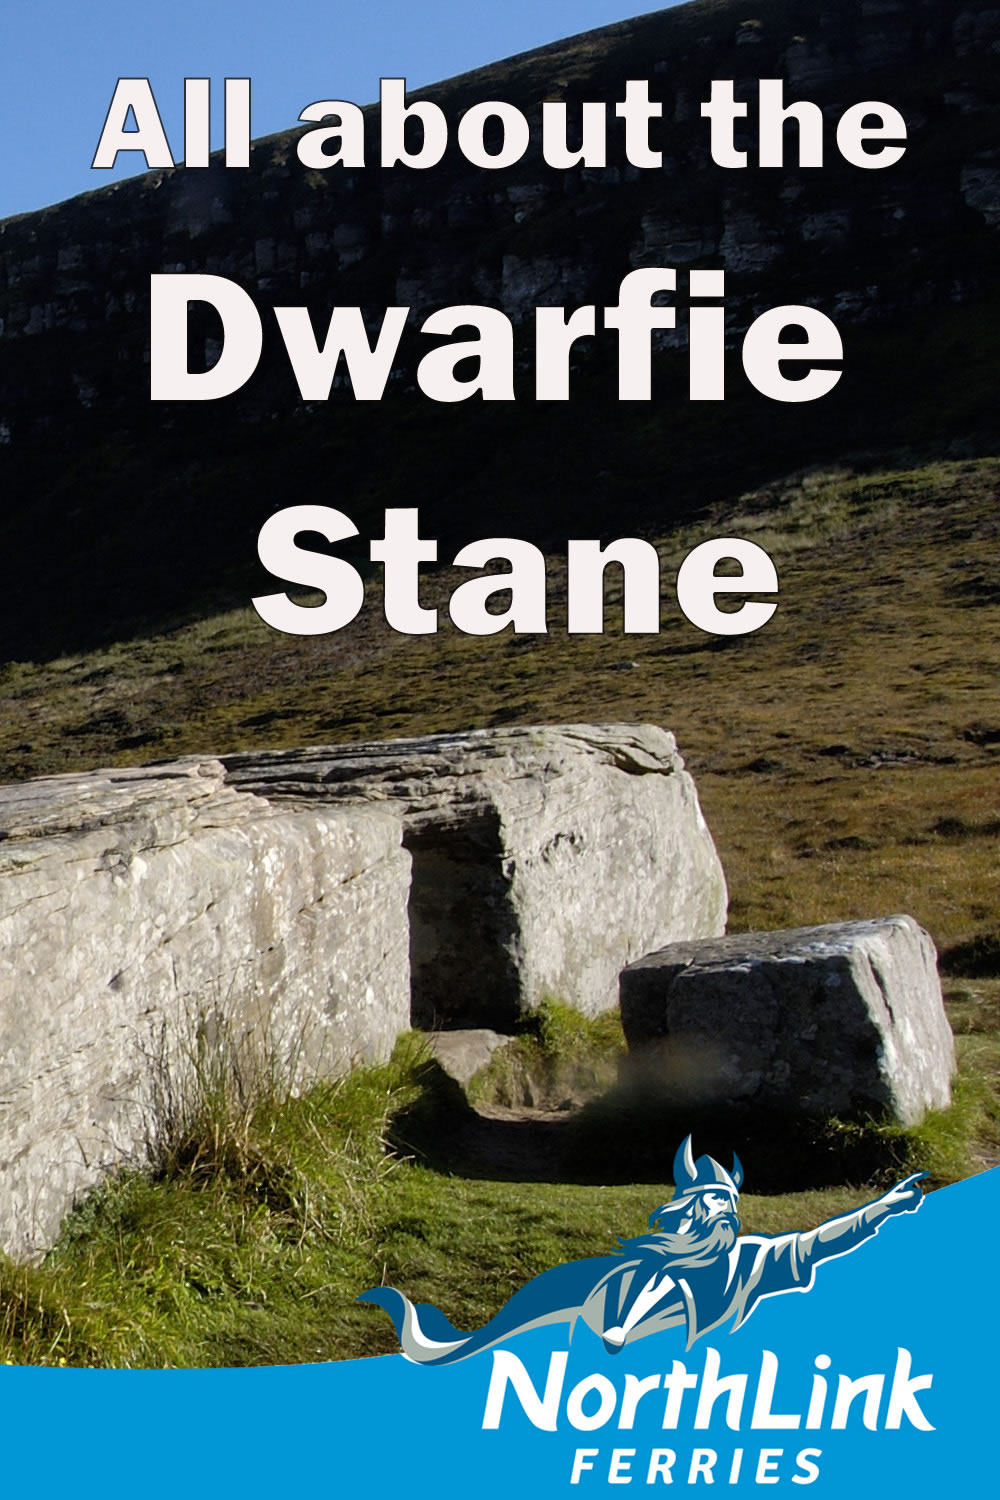 All about the Dwarfie Stane